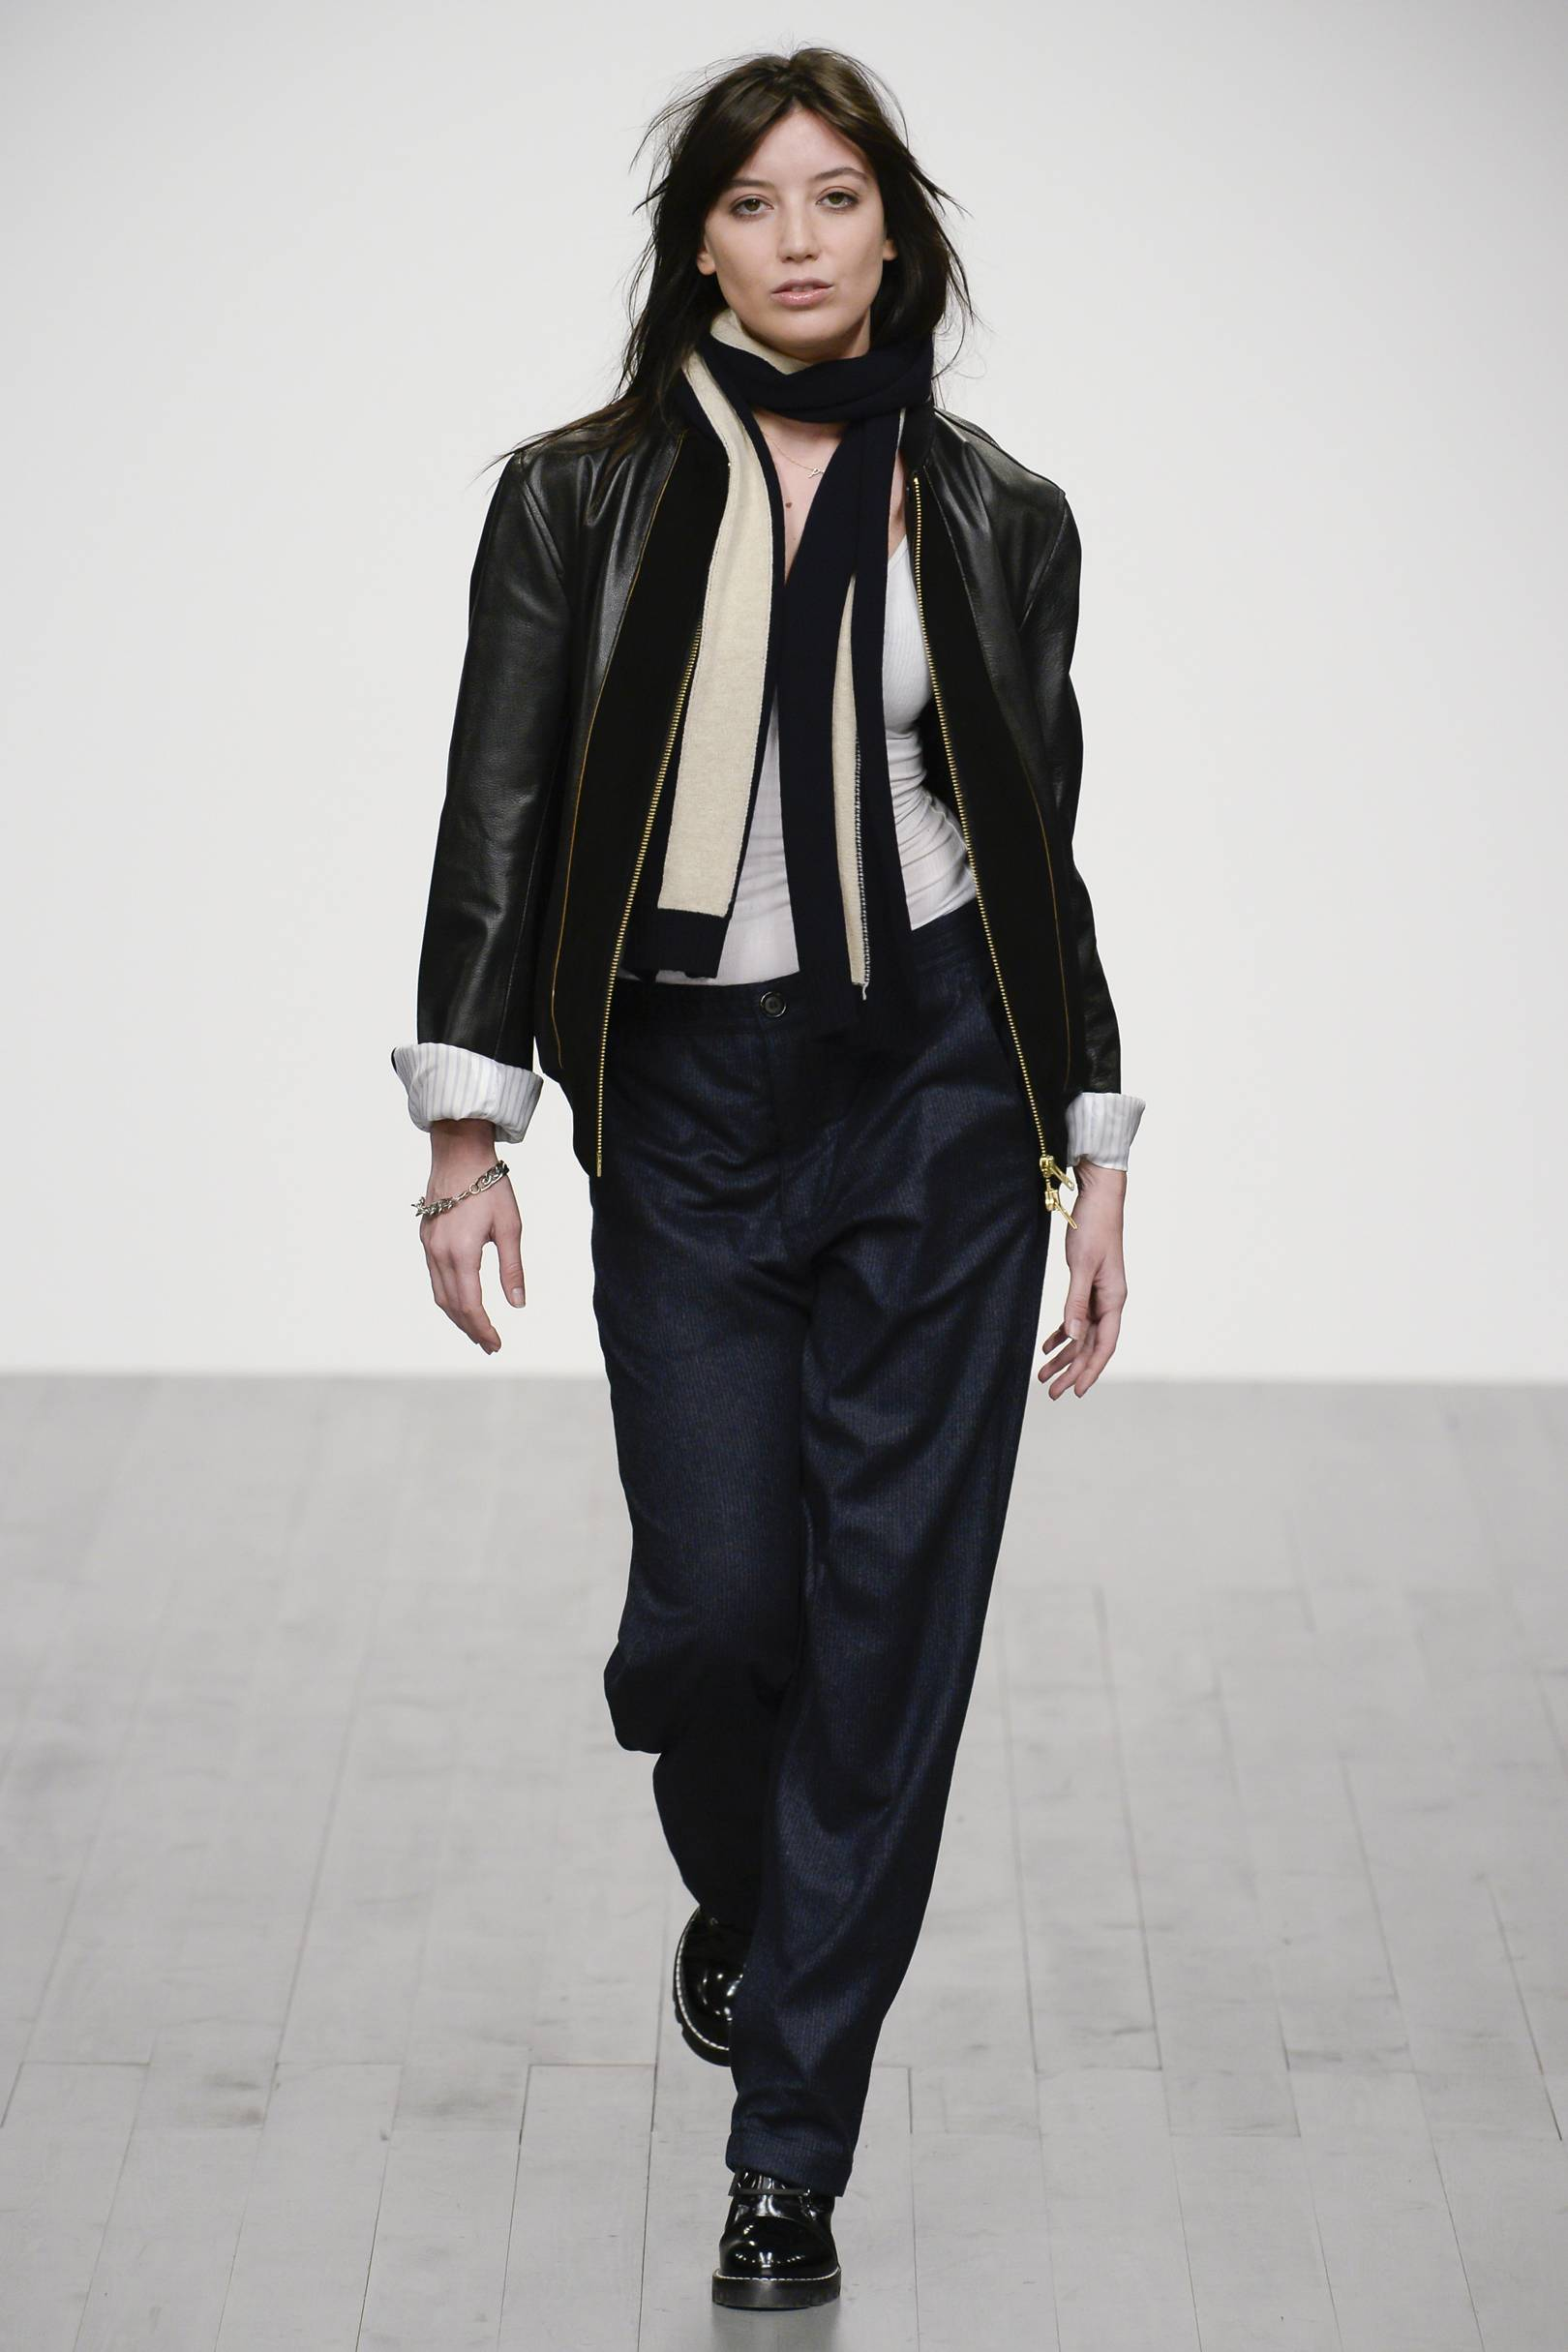 cec3c8071758 Menswear trends spotted at London Fashion Week Men s AW18 19 ...